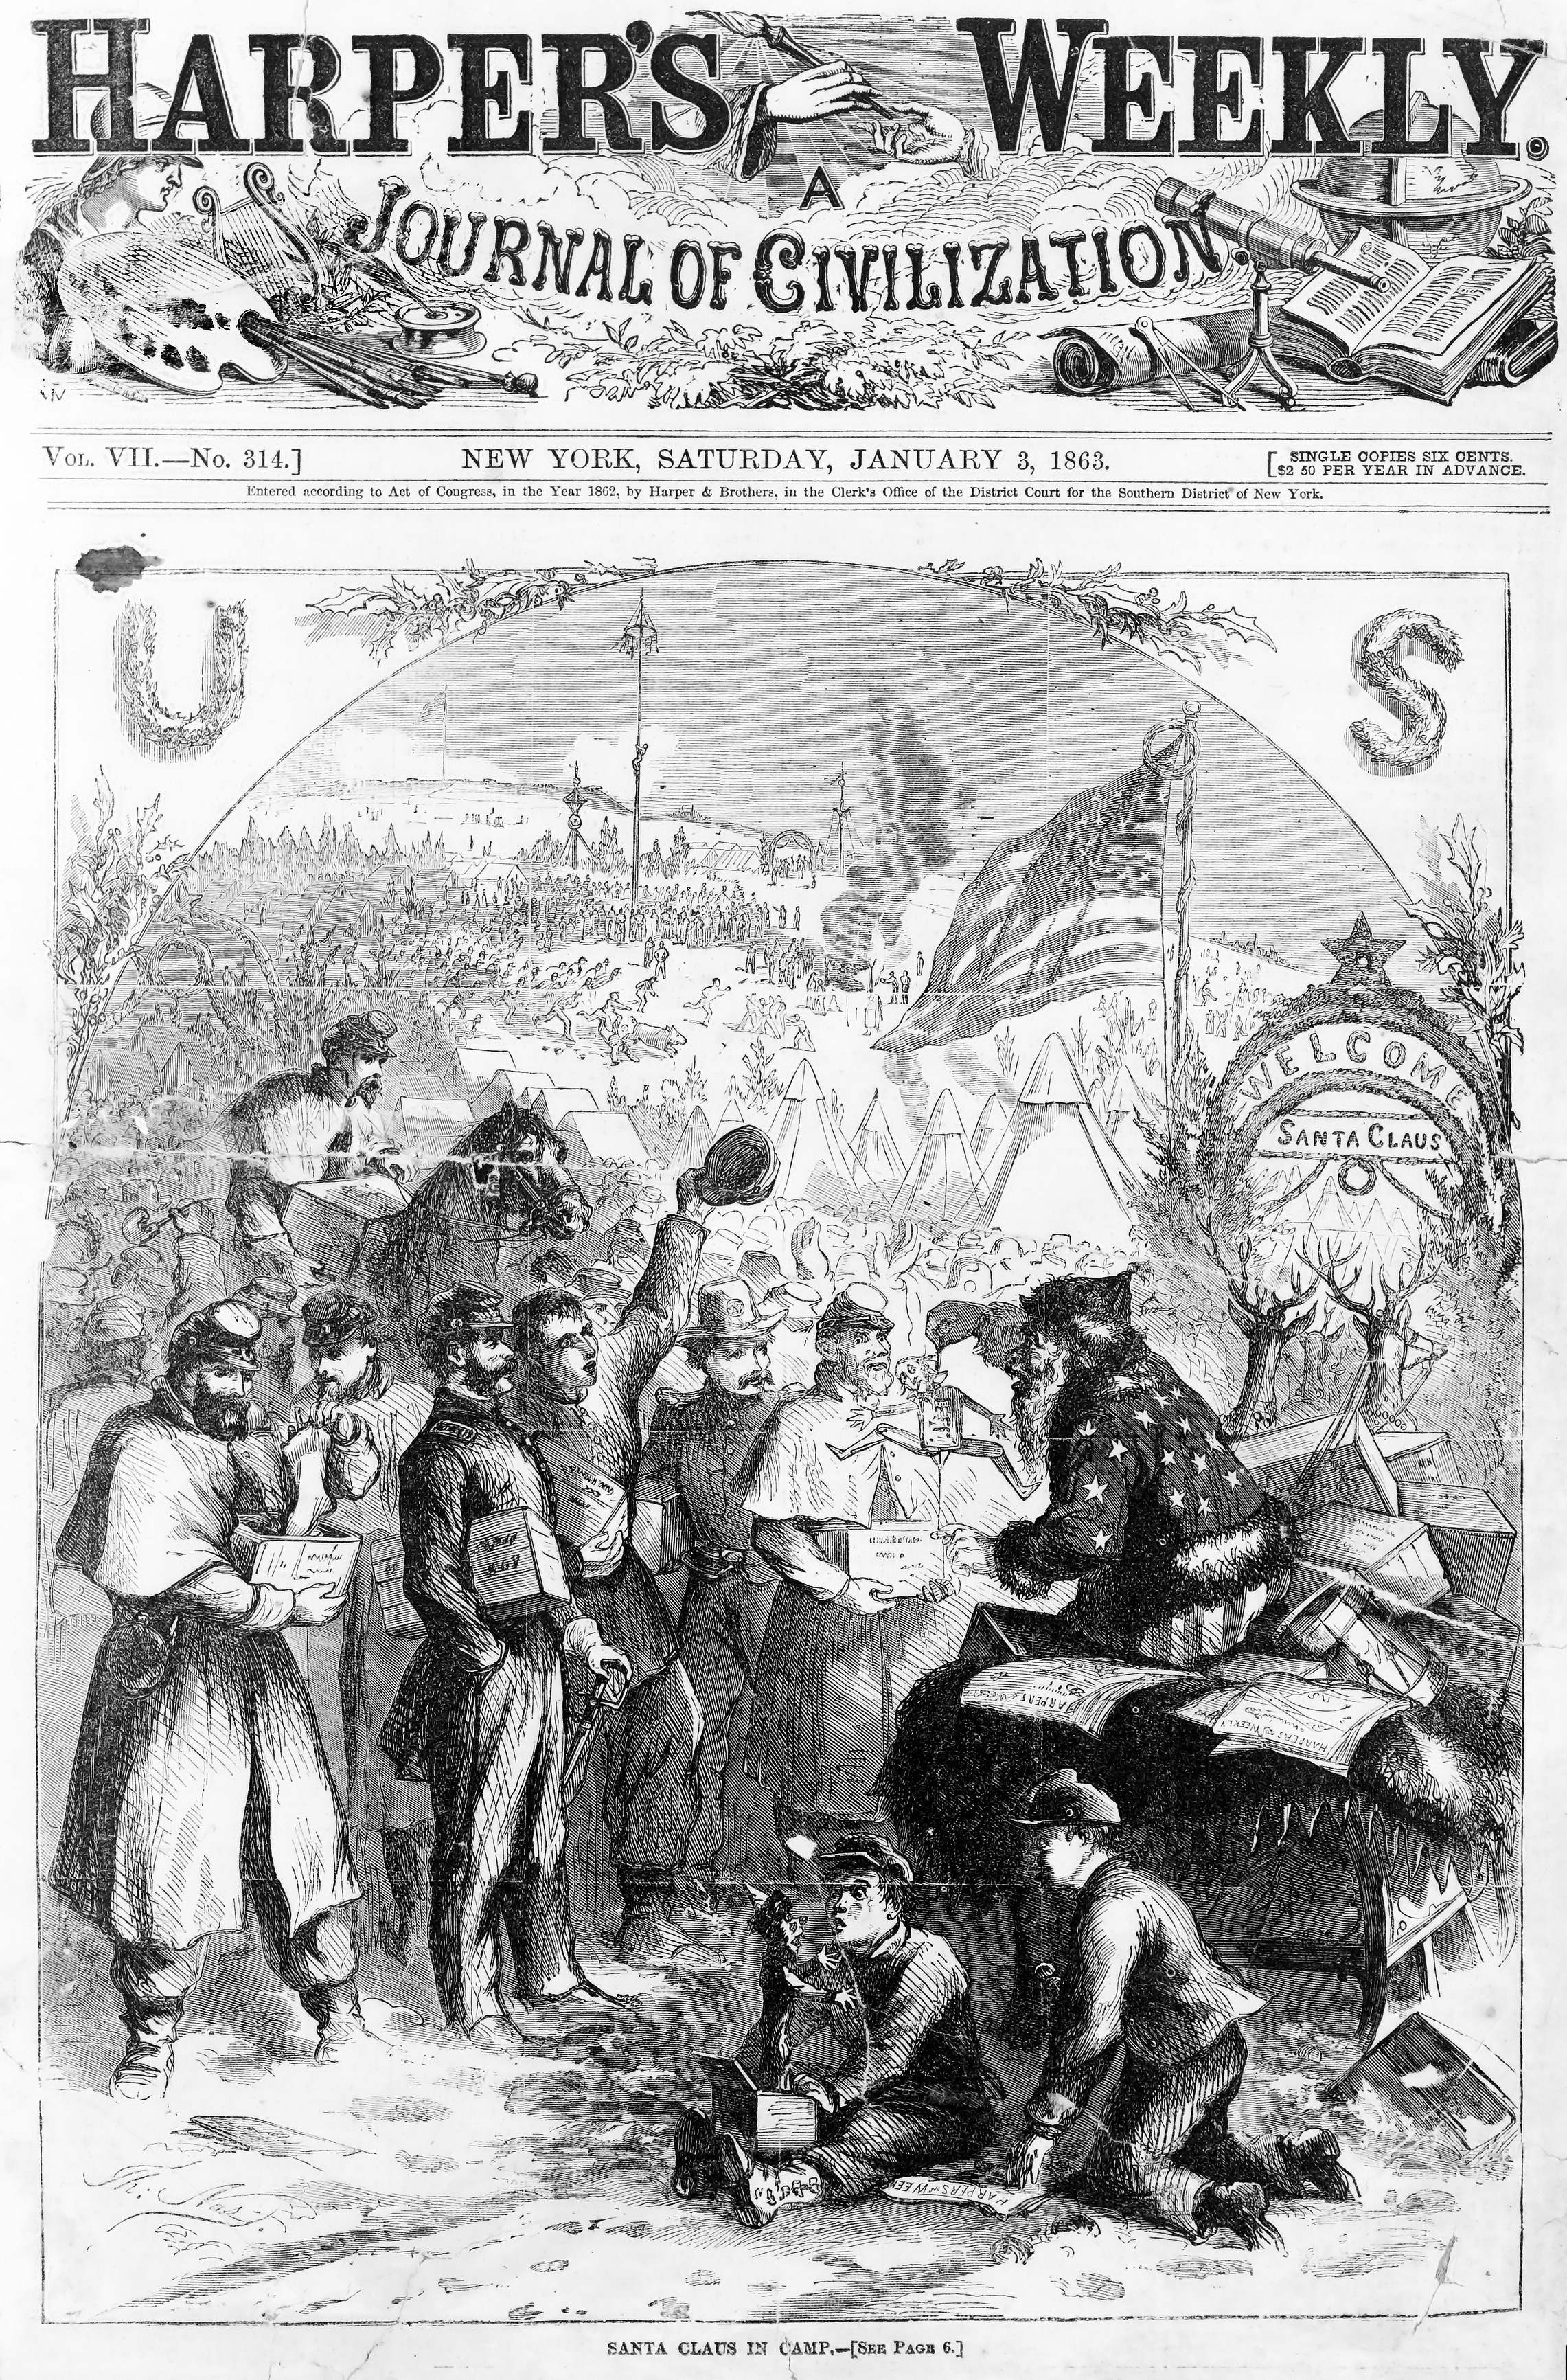 January 3, 1863 cover of Harper's Weekly by Thomas Nast,, one of the first depictions of Santa Claus.